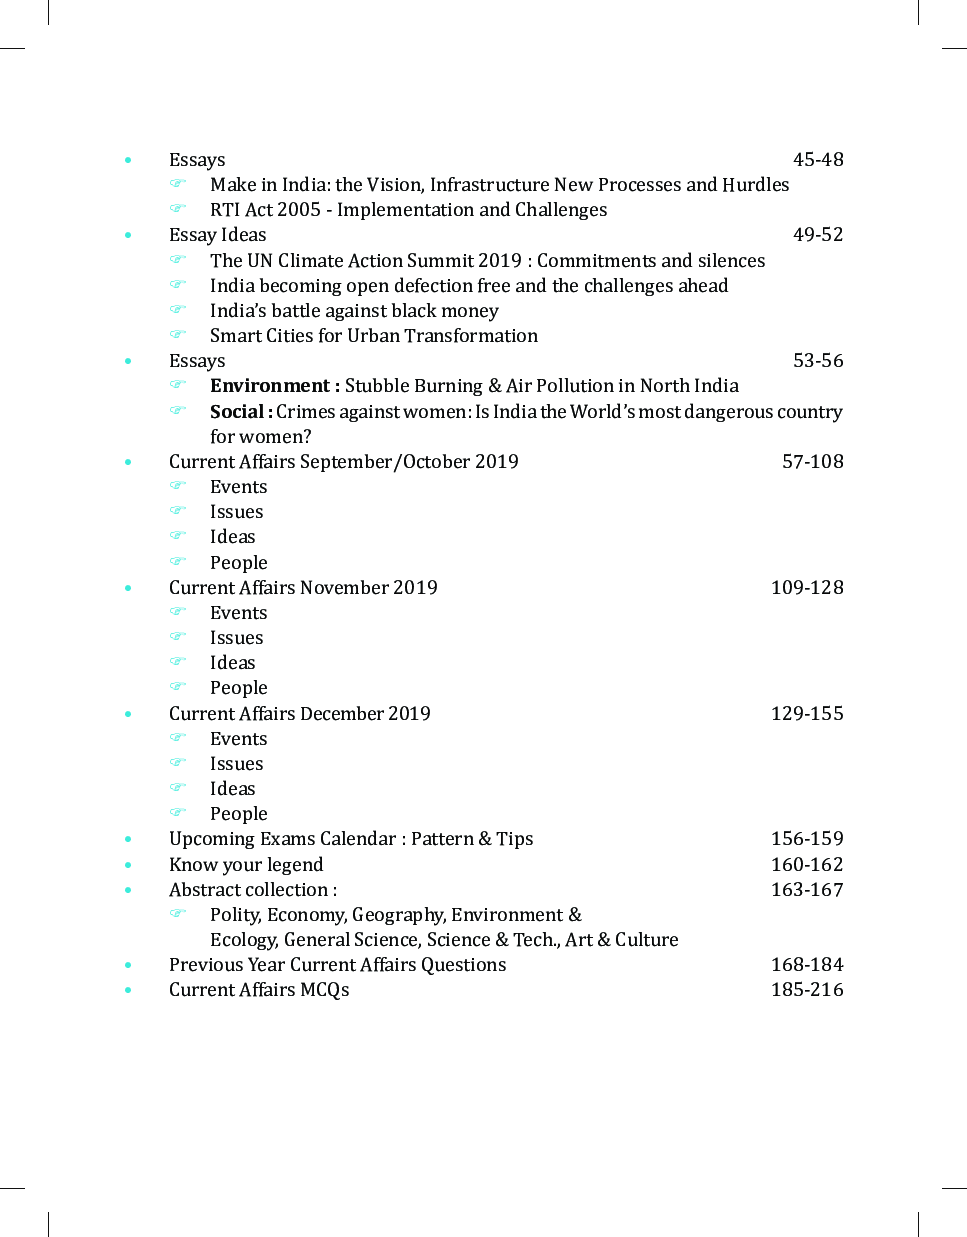 Weekly Current Affairs PDF – April 2019 - Free Downloads